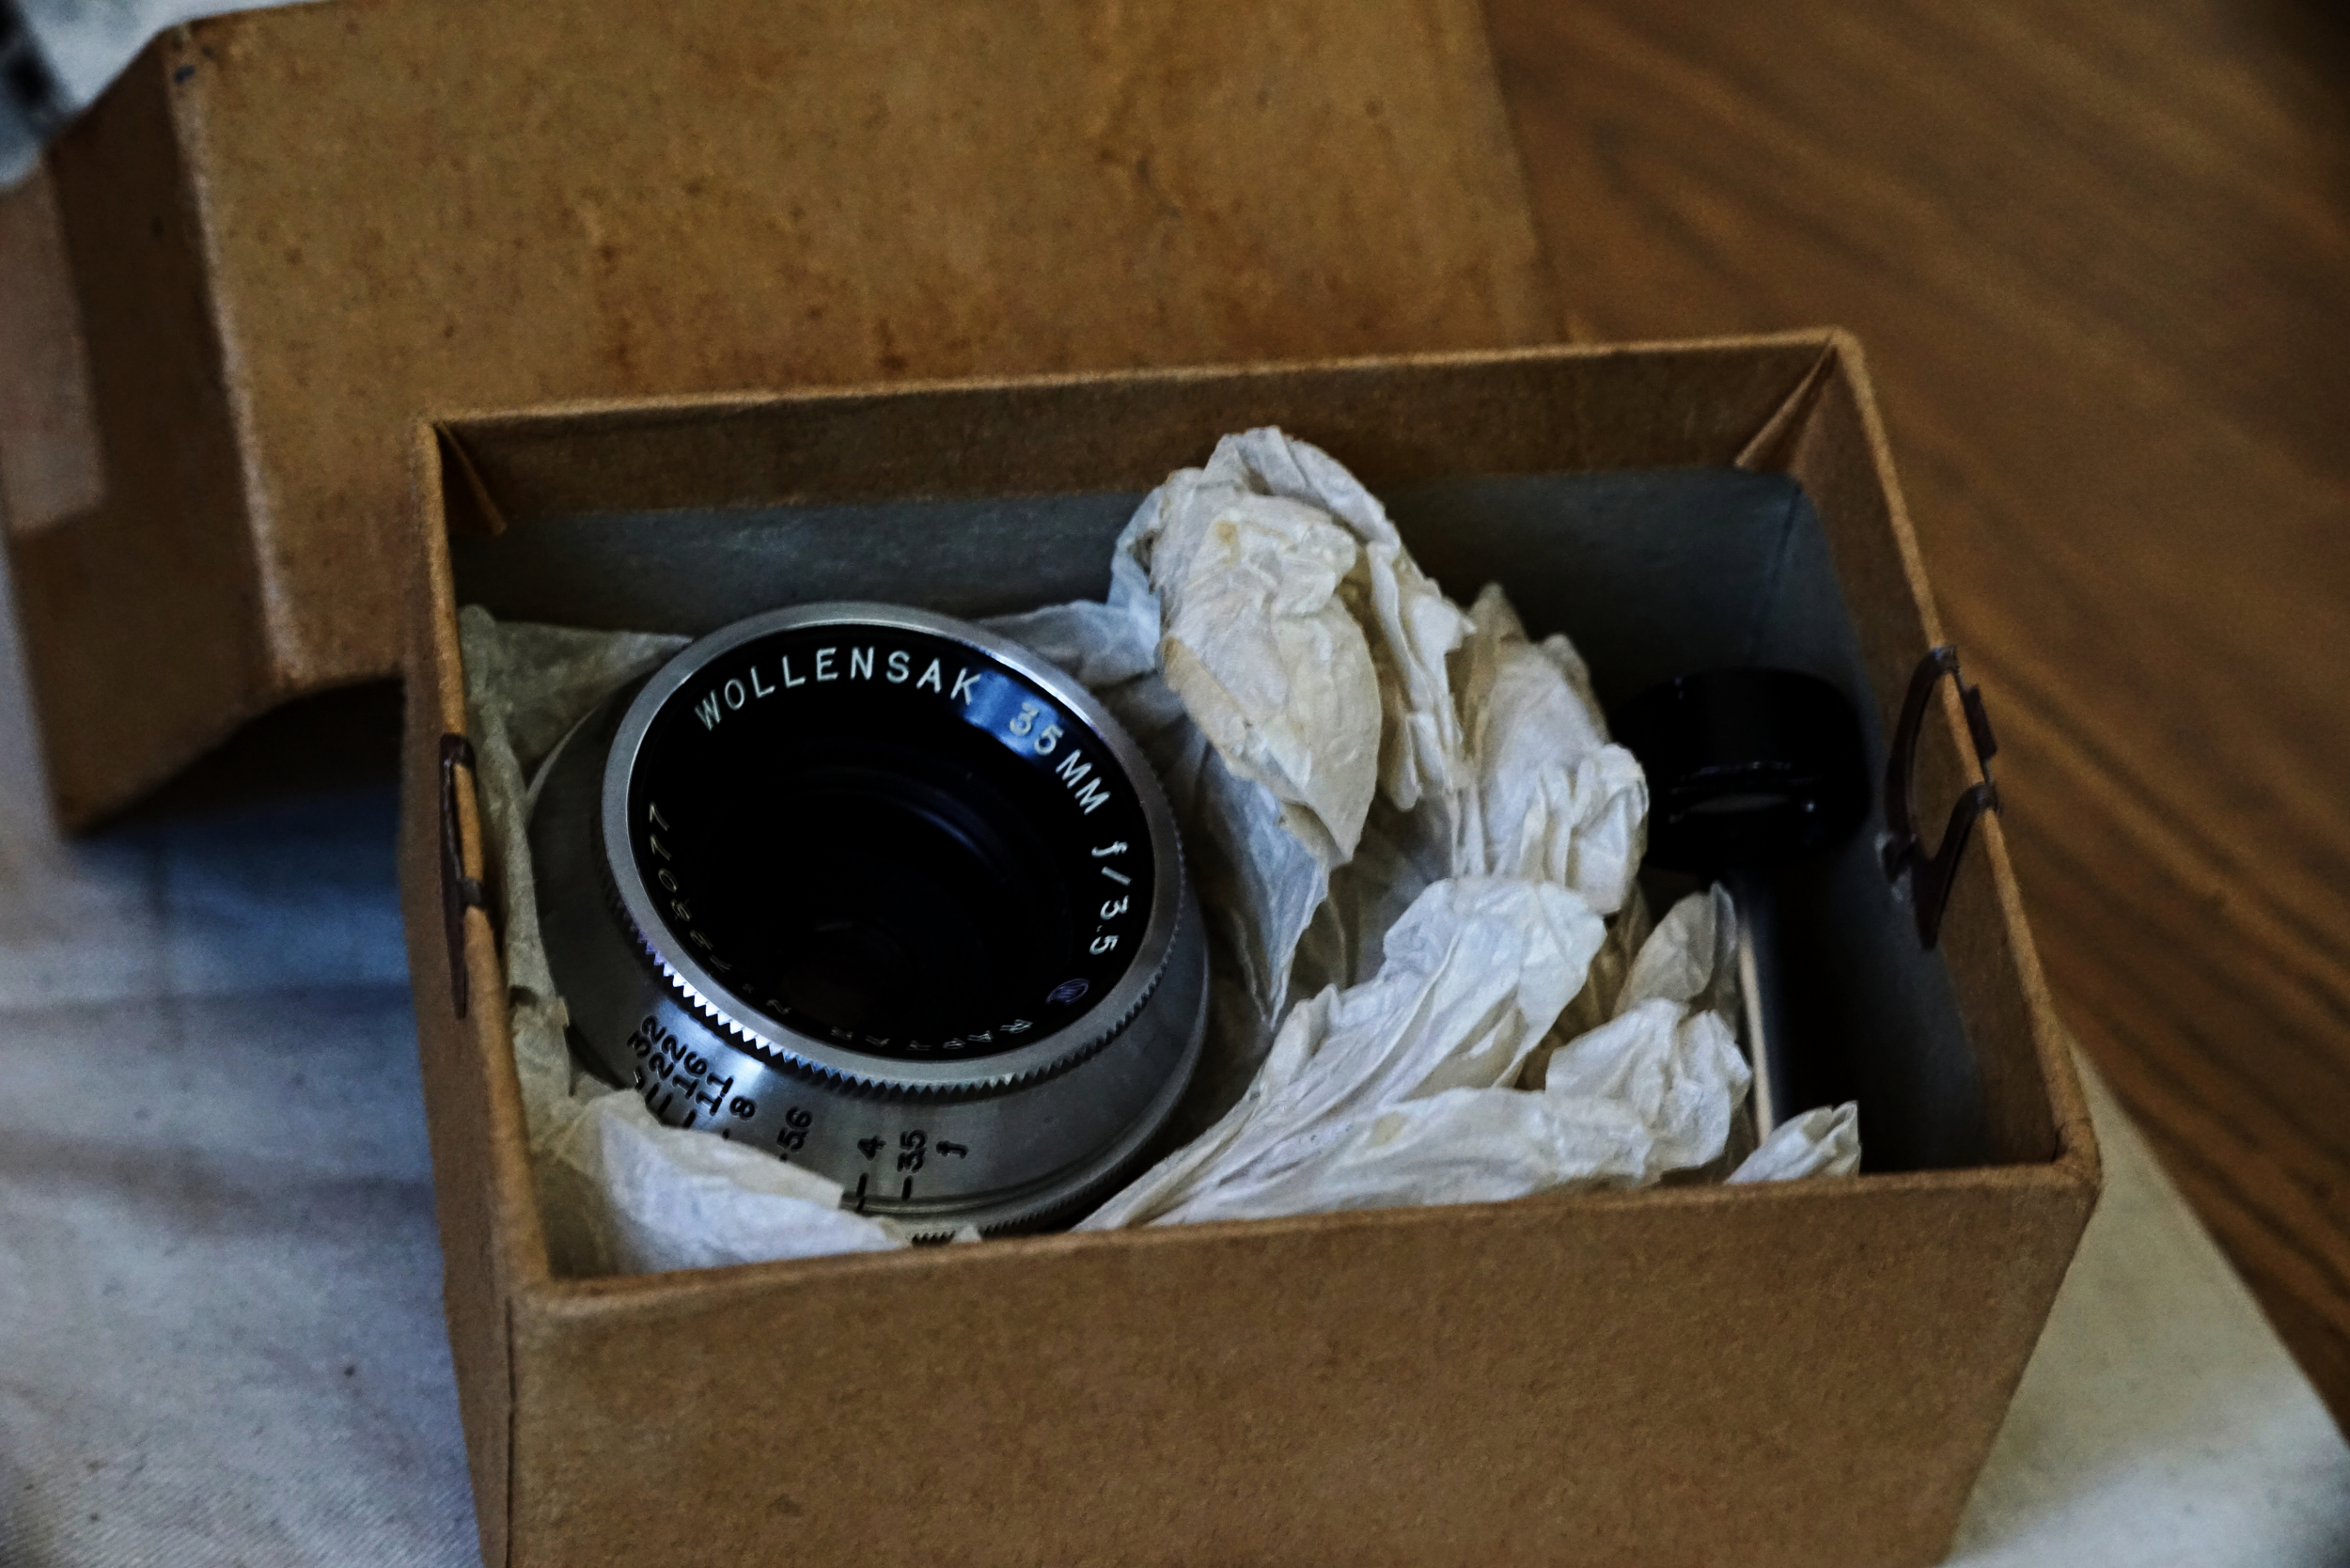 The Wollensak Raptar 35mm f3.5 in its original box.